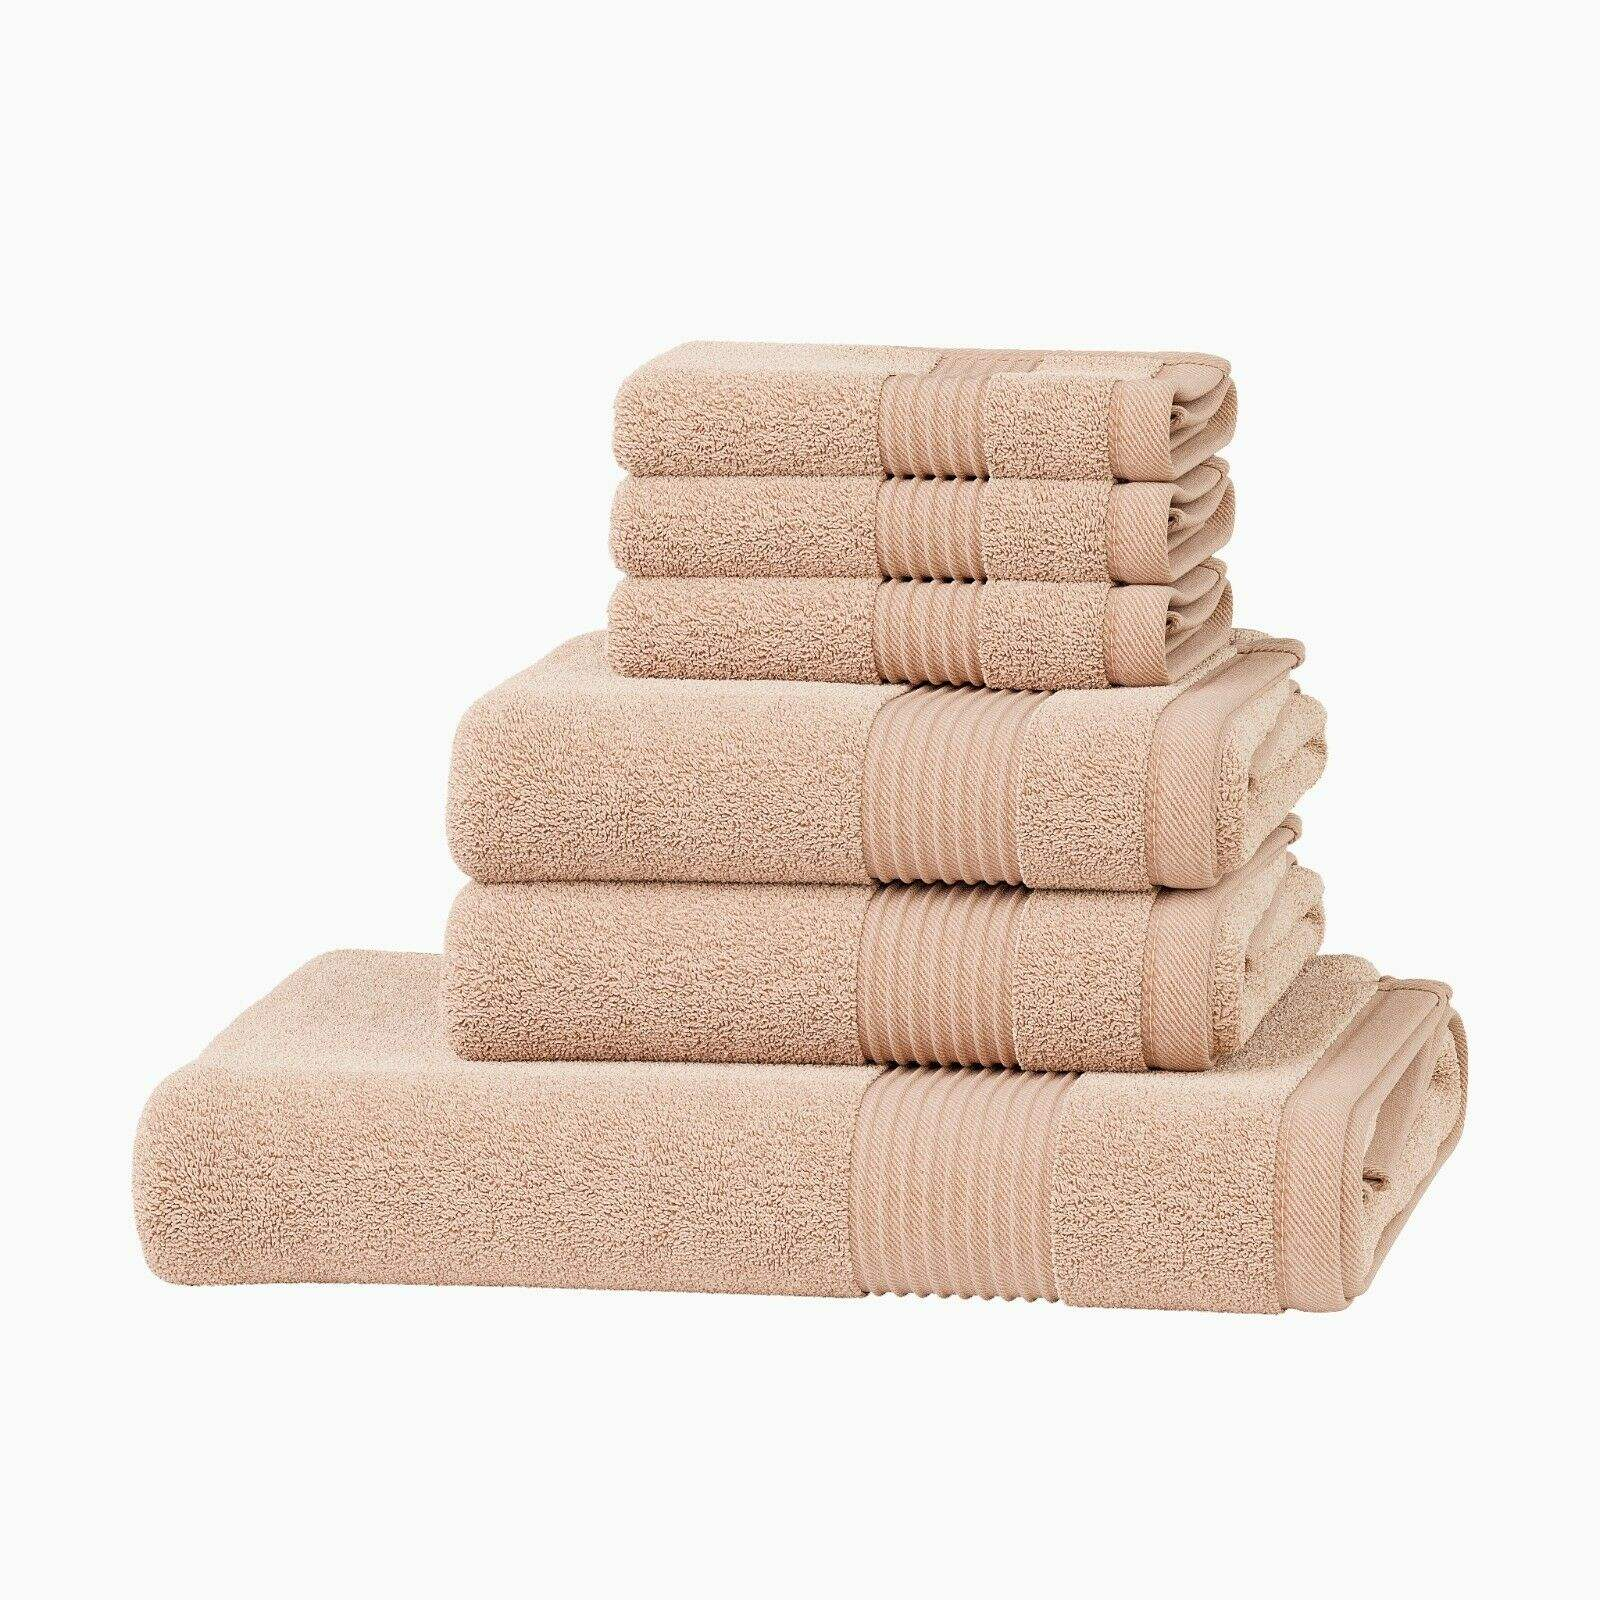 Luxury 100% Cotton 6 Pcs Towel Set Bathroom Towel Hand Bath Towel